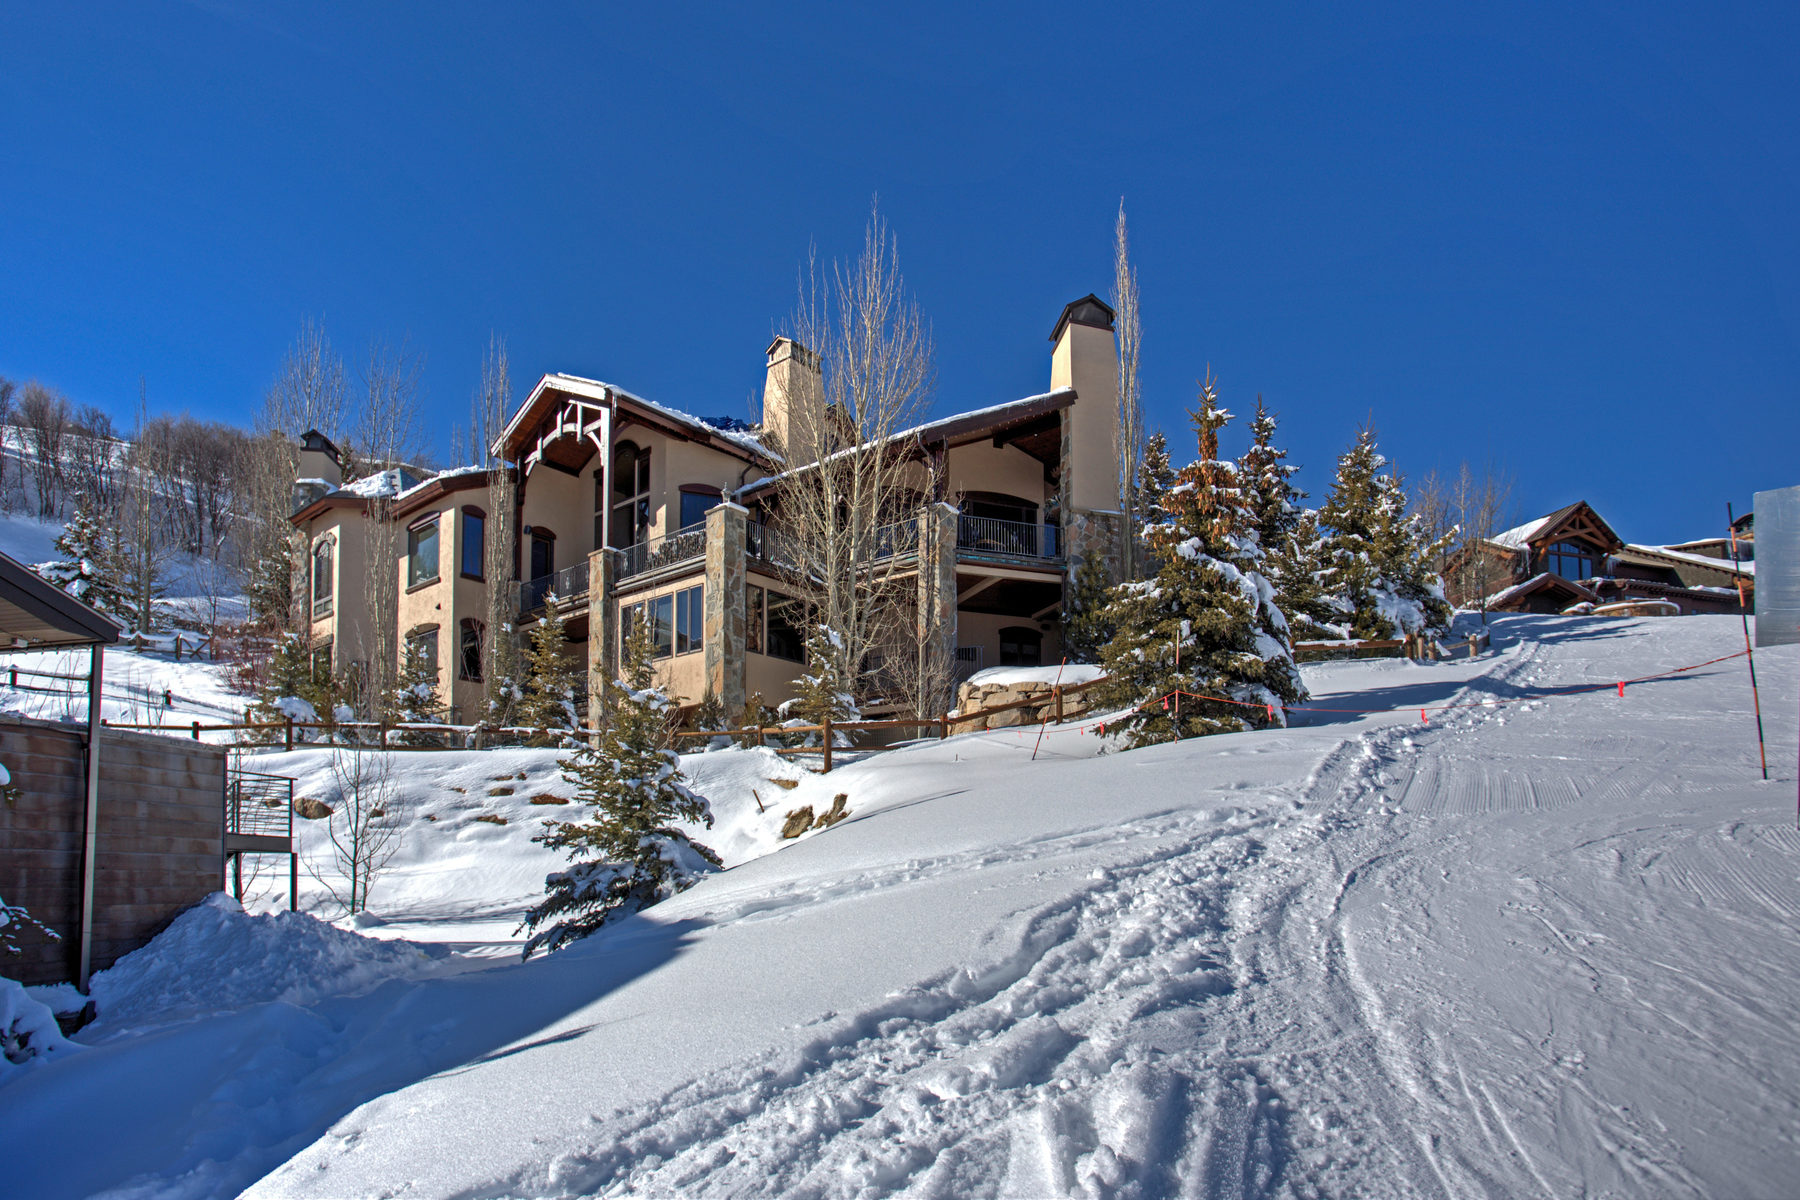 Single Family Home for Sale at Casa Cielo, Above the Clouds in Deer Crest 3300 W Deer Crest Estates Dr Park City, Utah, 84060 United States